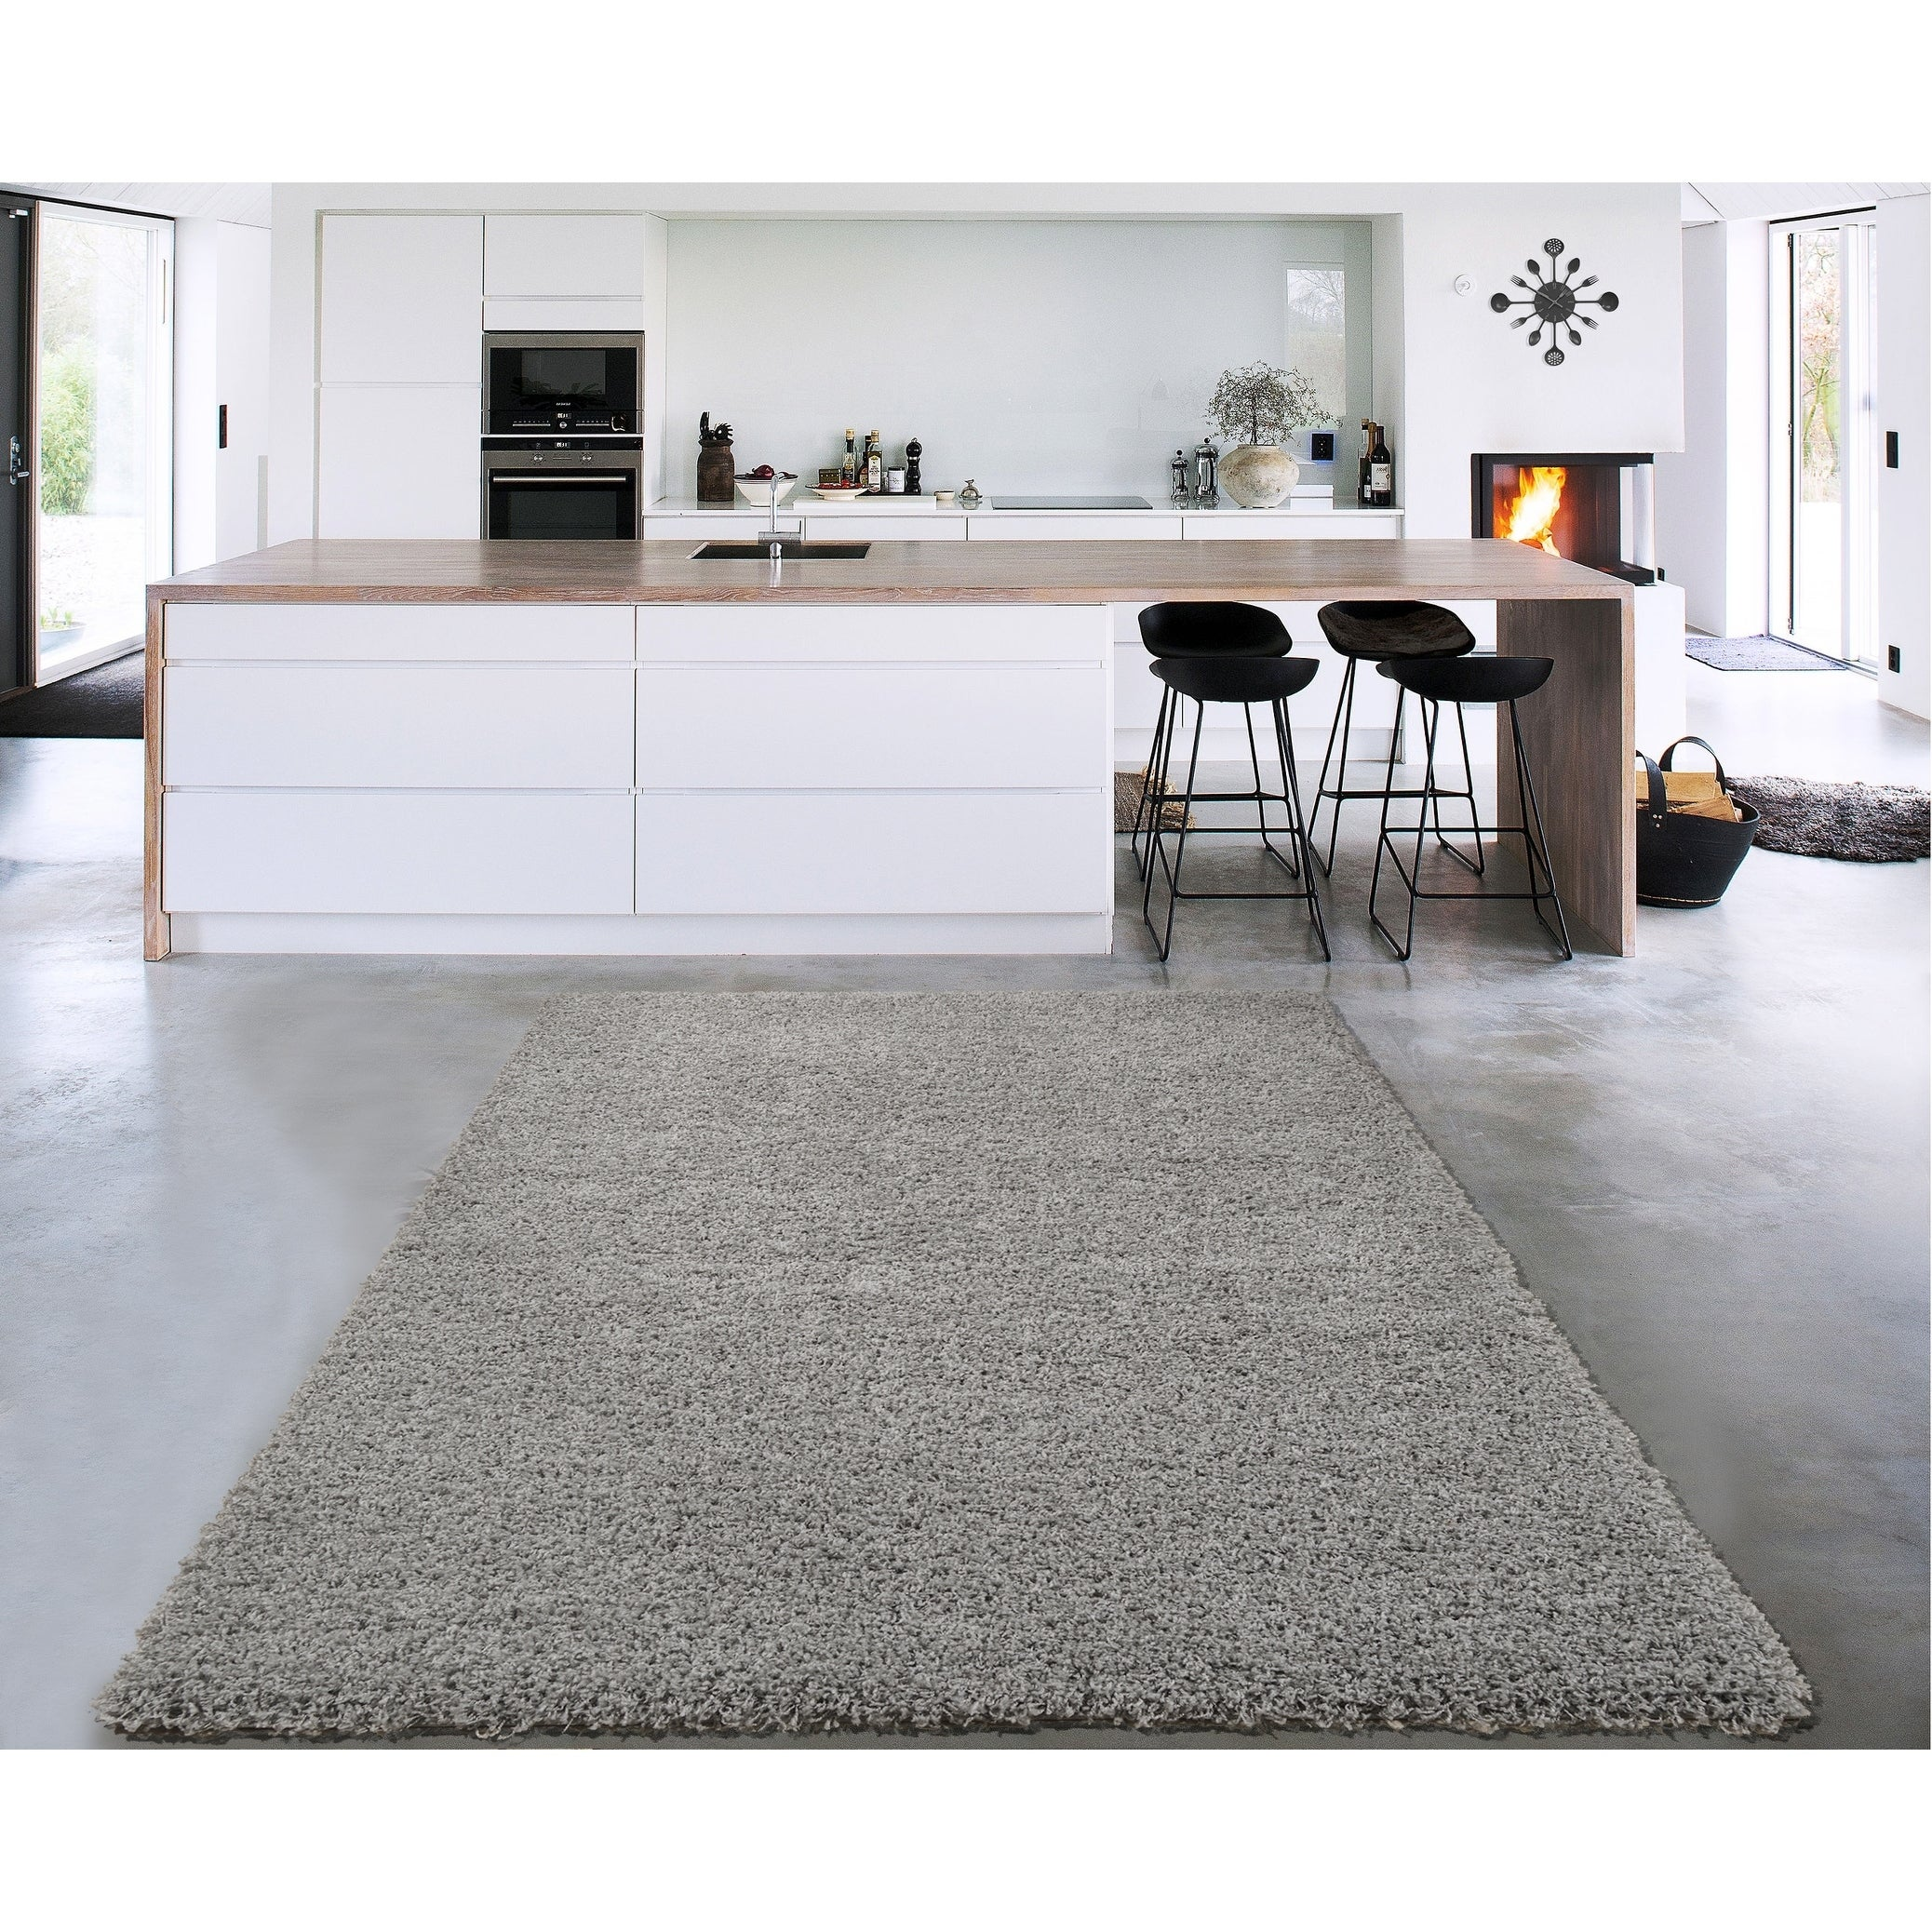 Shop Sweet Home Stores Cozy Shag Collection Accent Rug (3' x 5 ... on